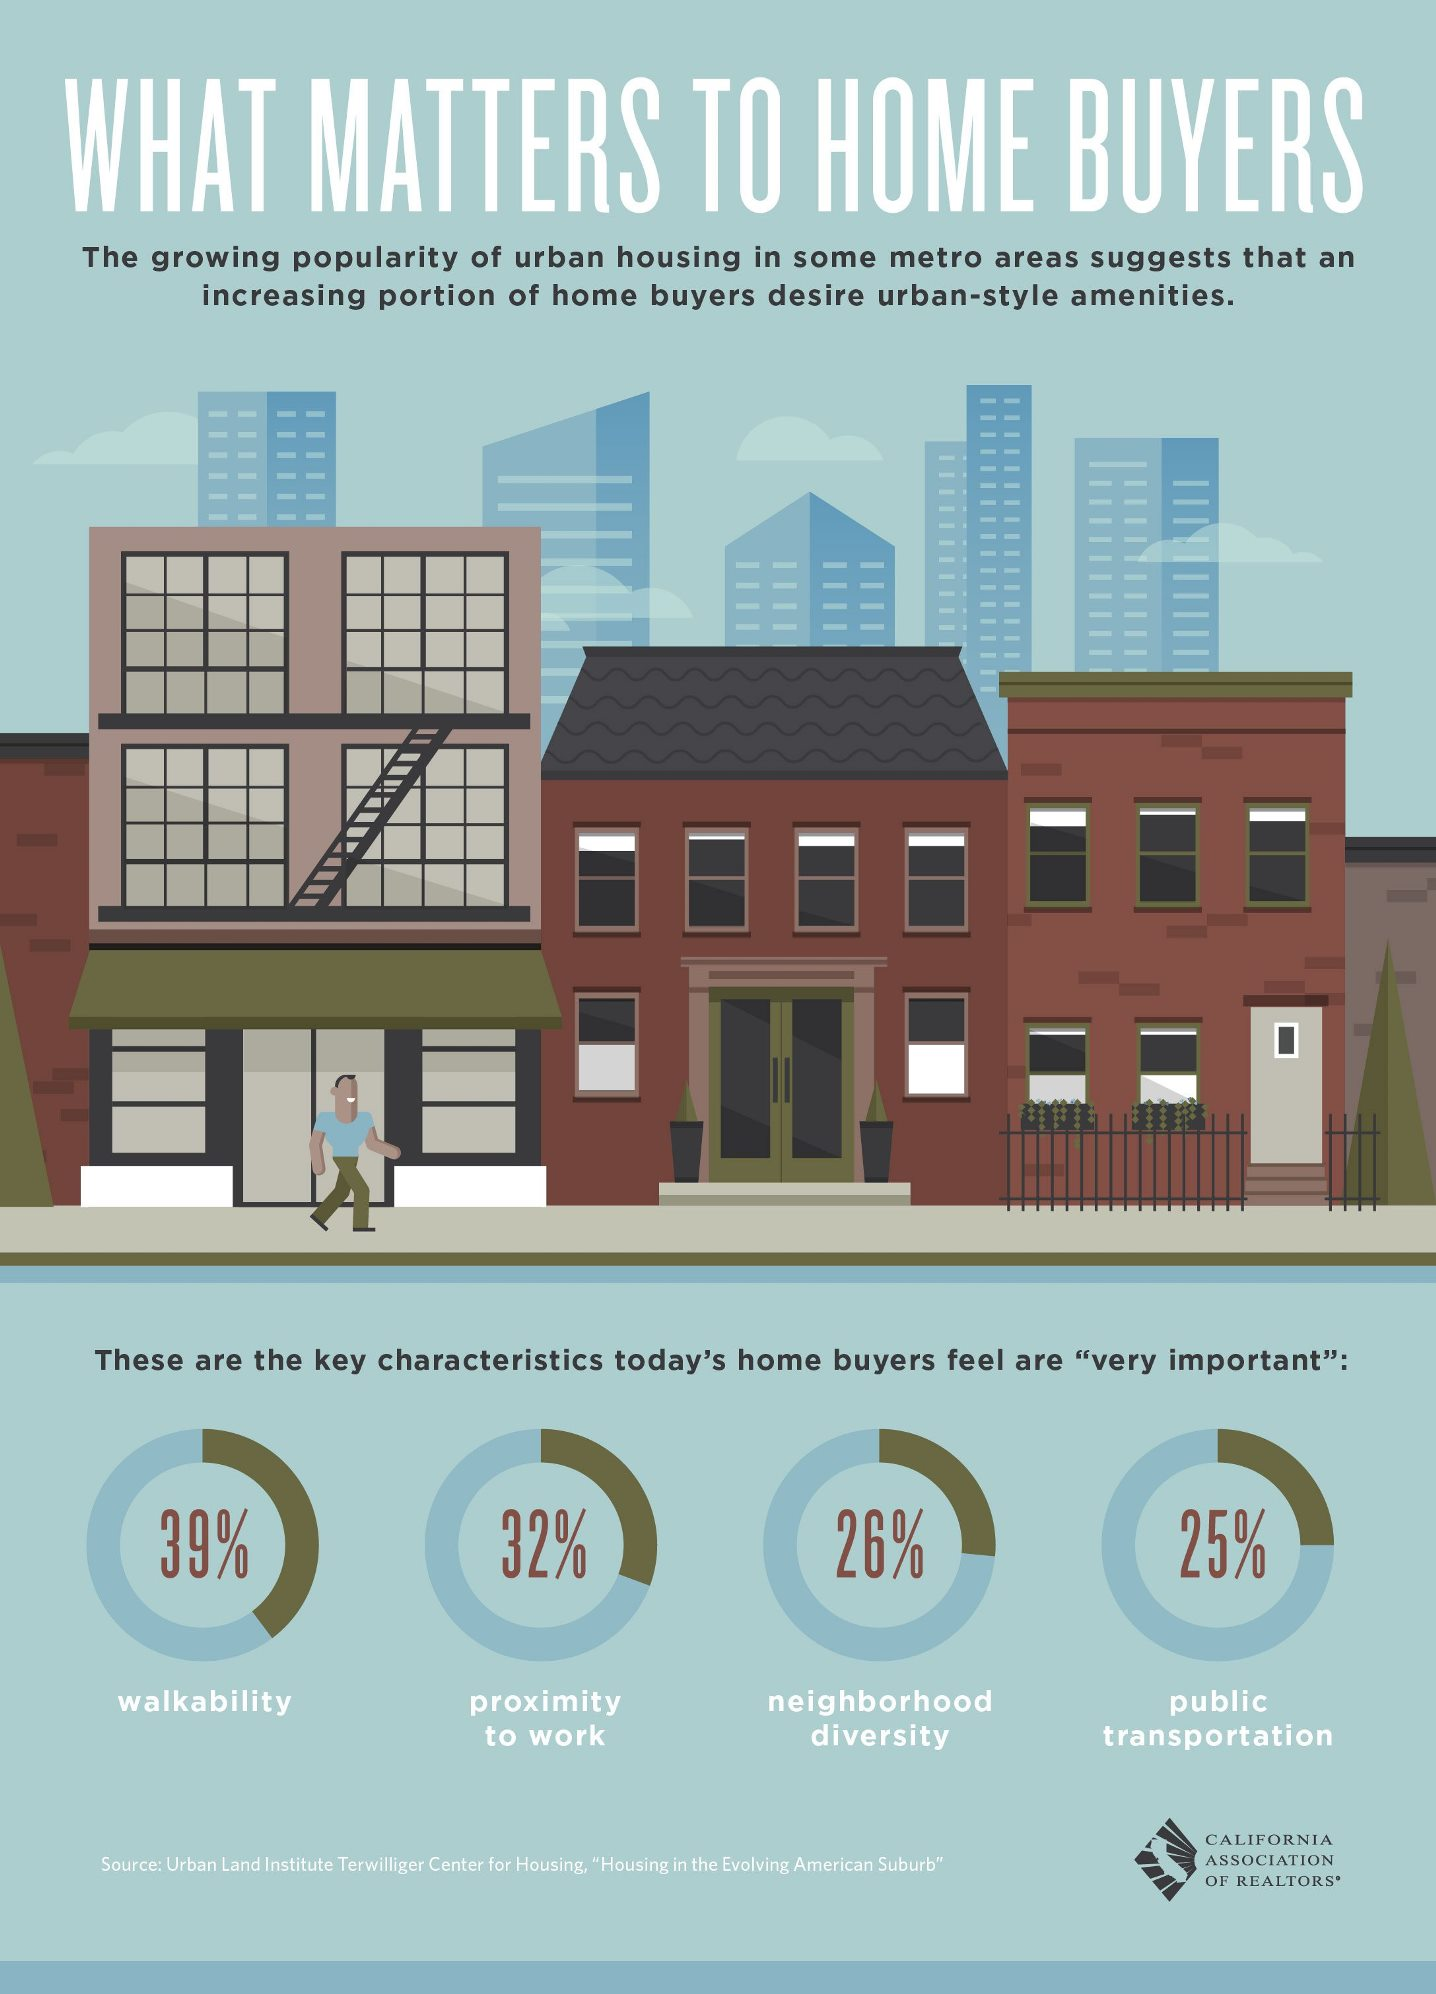 What Matters Most To Home Buyers infographic